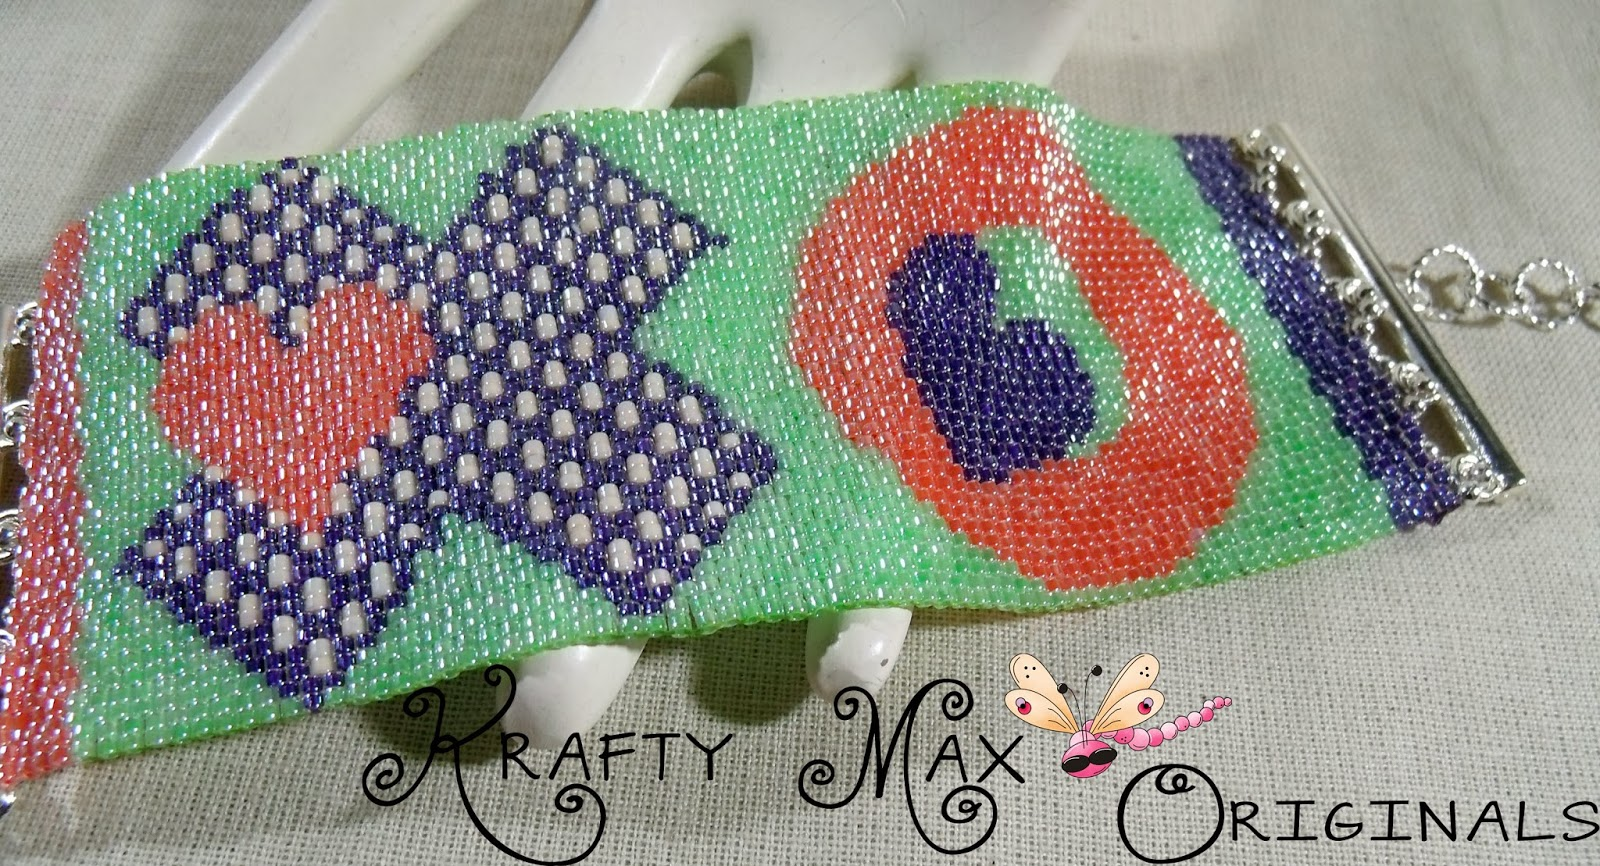 http://www.lajuliet.com/index.php/2013-01-04-15-21-51/ad/beaded,49/exclusive-x-s-and-o-s-are-hugs-and-kisses-for-everyone-handmade-beadwoven-bracelet-by-krafty-max-originals,305